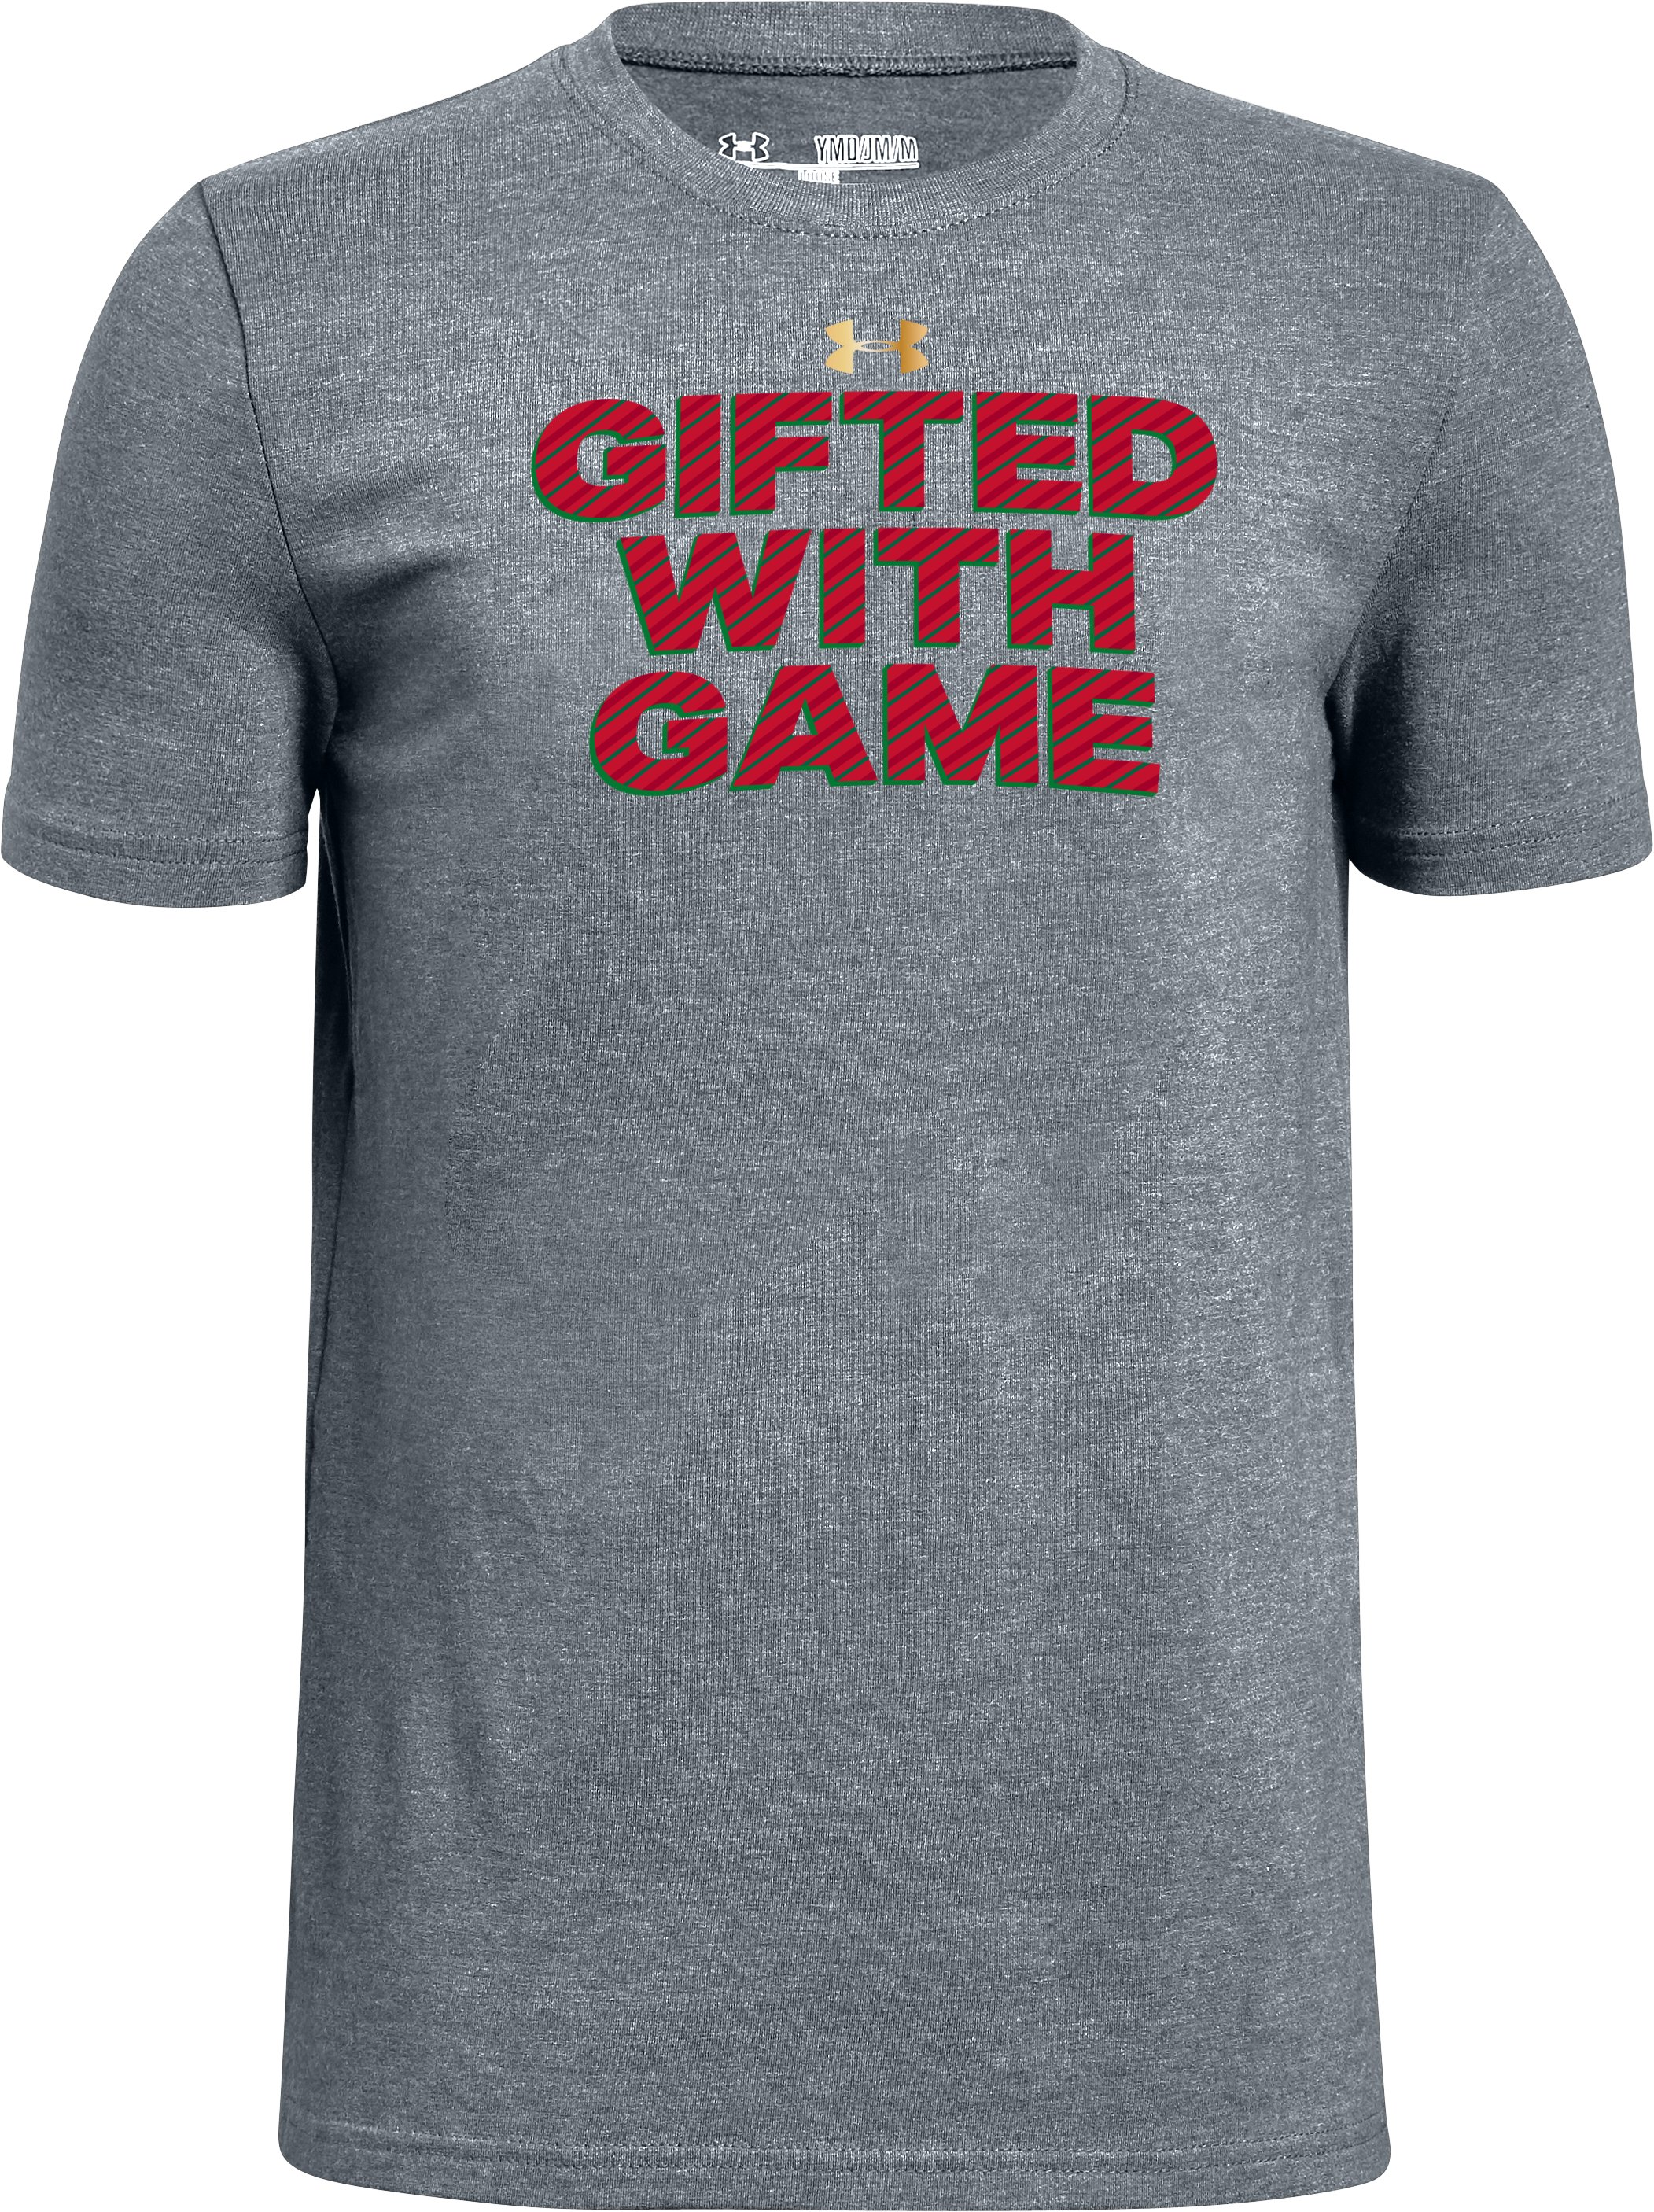 Boys' UA Gifted With Game Graphic T-Shirt, STEEL LIGHT HEATHER